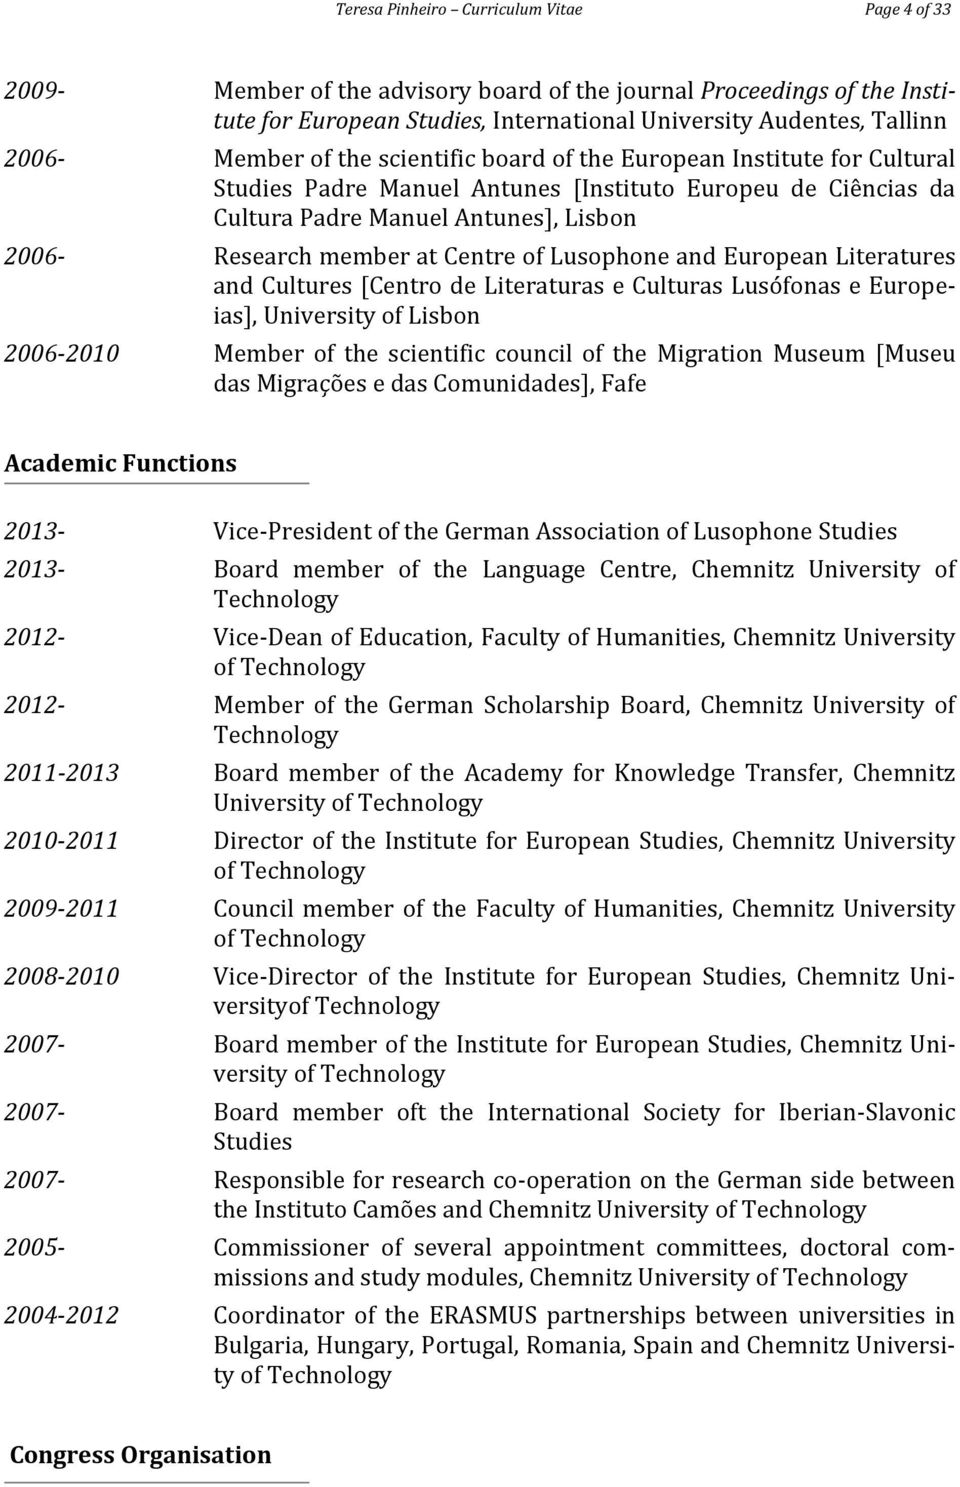 Centre of Lusophone and European Literatures and Cultures [Centro de Literaturas e Culturas Lusófonas e Europeias], University of Lisbon 2006-2010 Member of the scientific council of the Migration